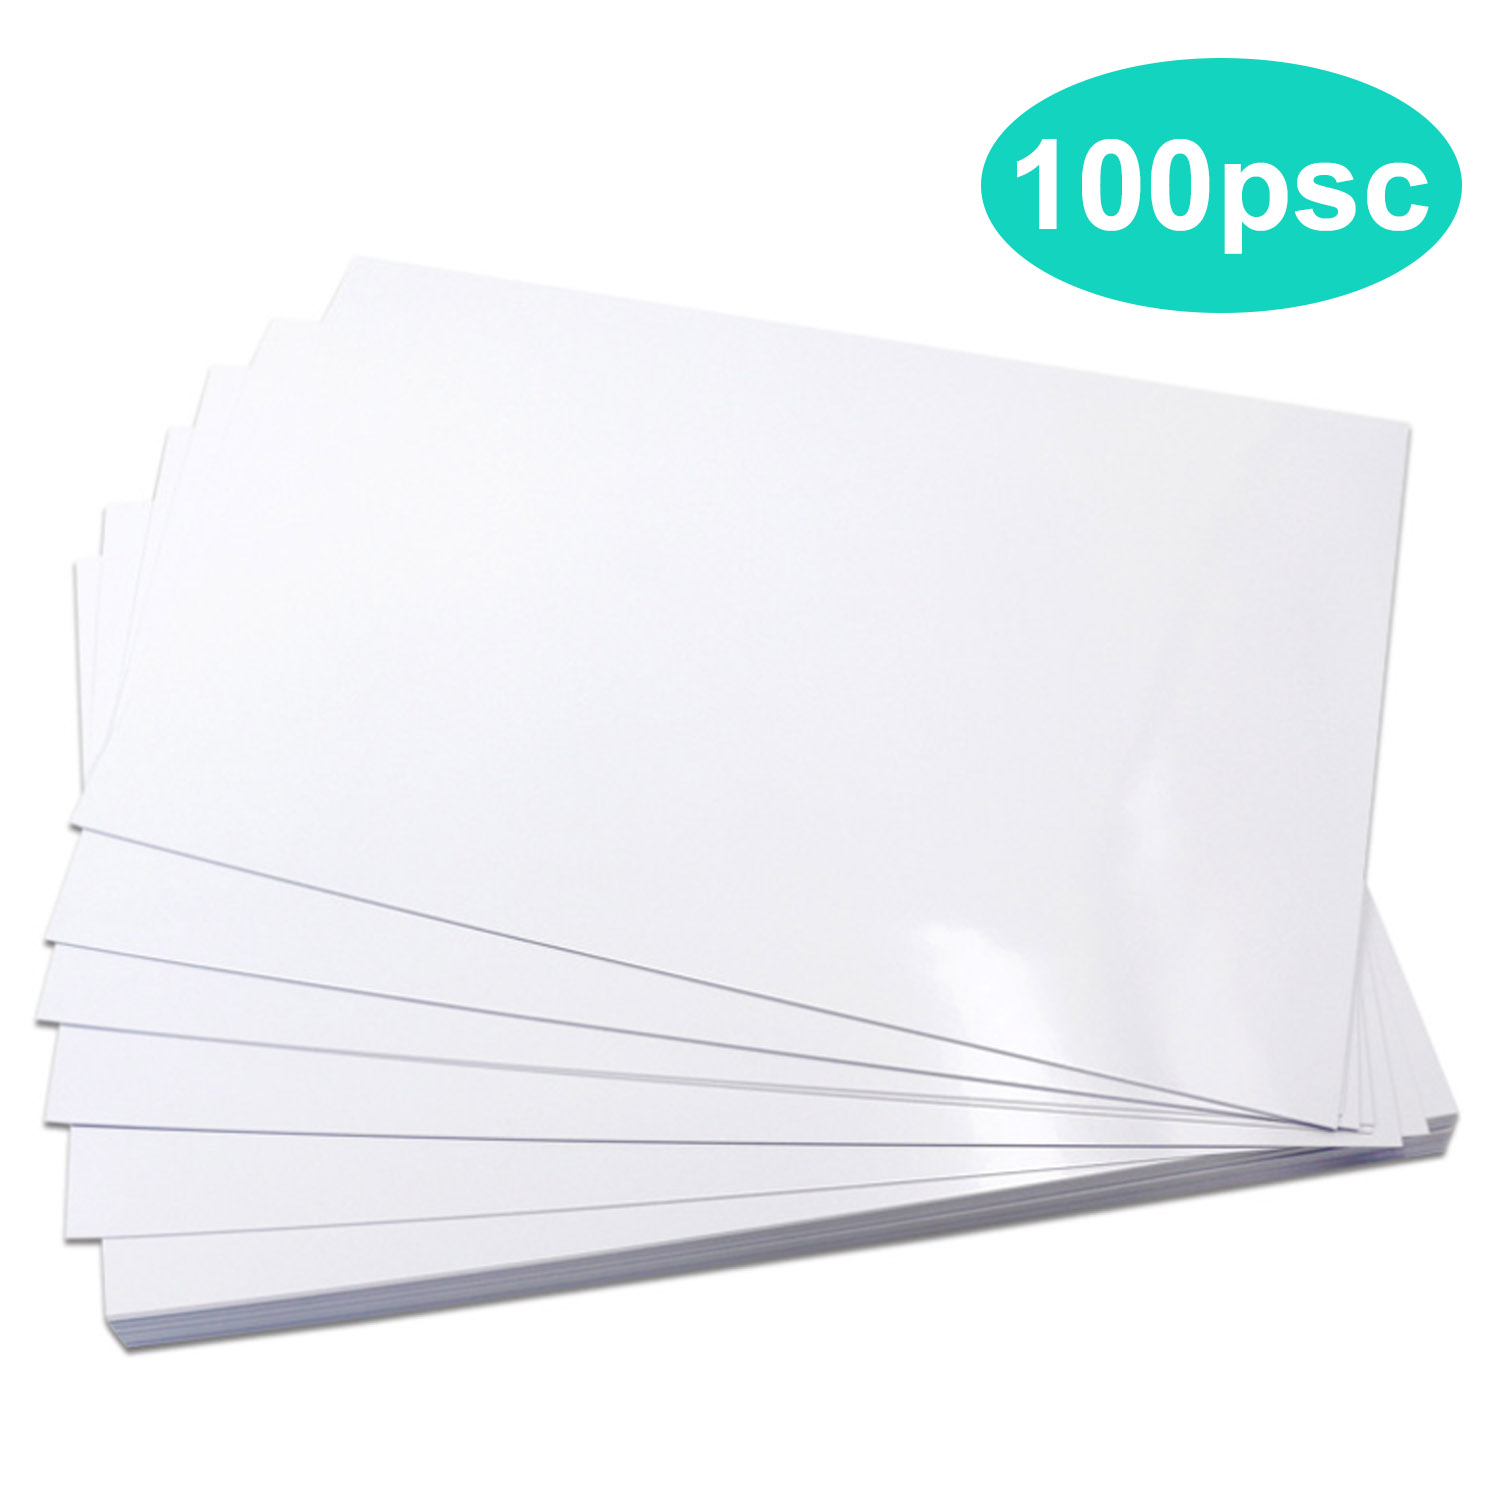 100PCS 3R 5x7 240g Waterproof High Glossy Photo Papers For All Inkjet Printers Home Office Photo Studio Personal Use